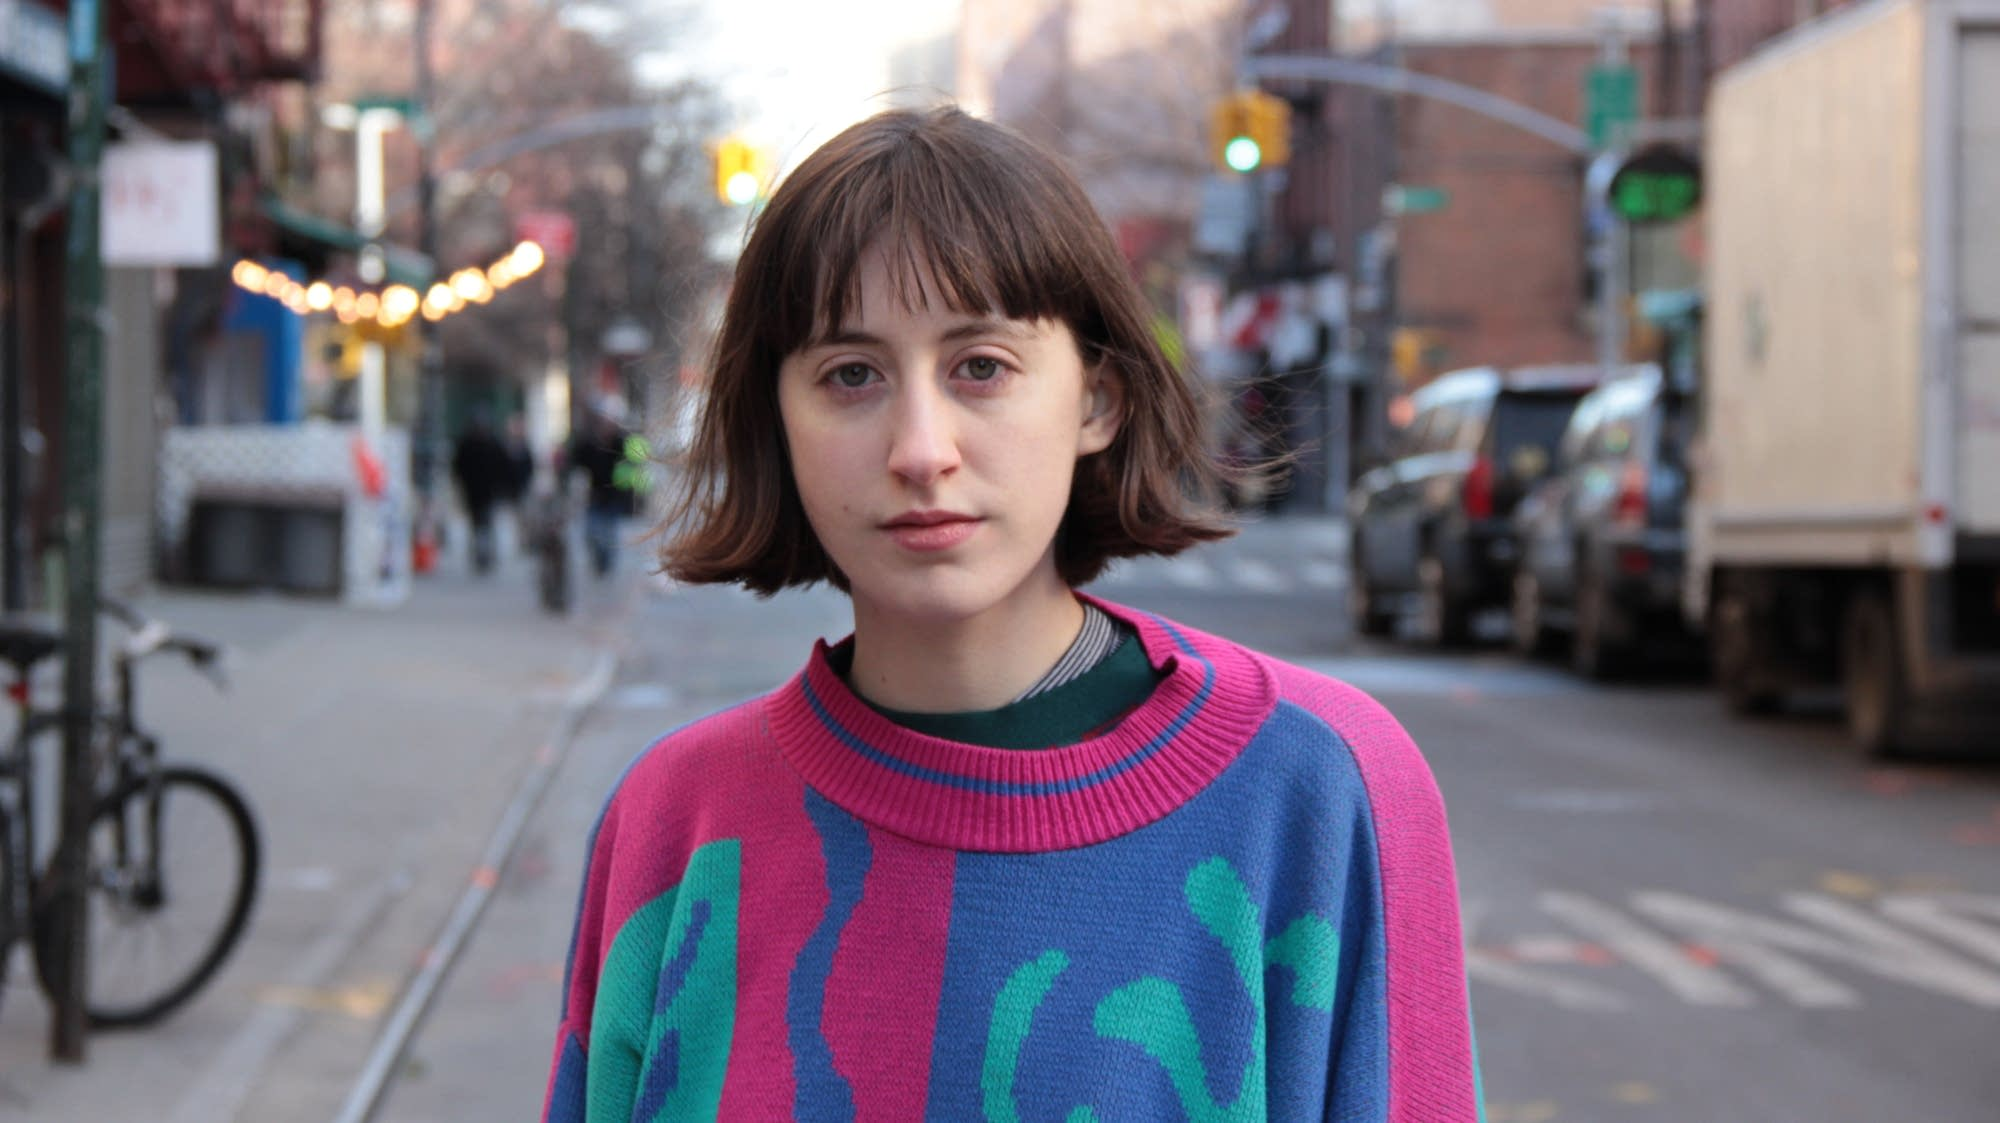 Take This: Win Two Tickets to Frankie Cosmos at 1720 - Janky